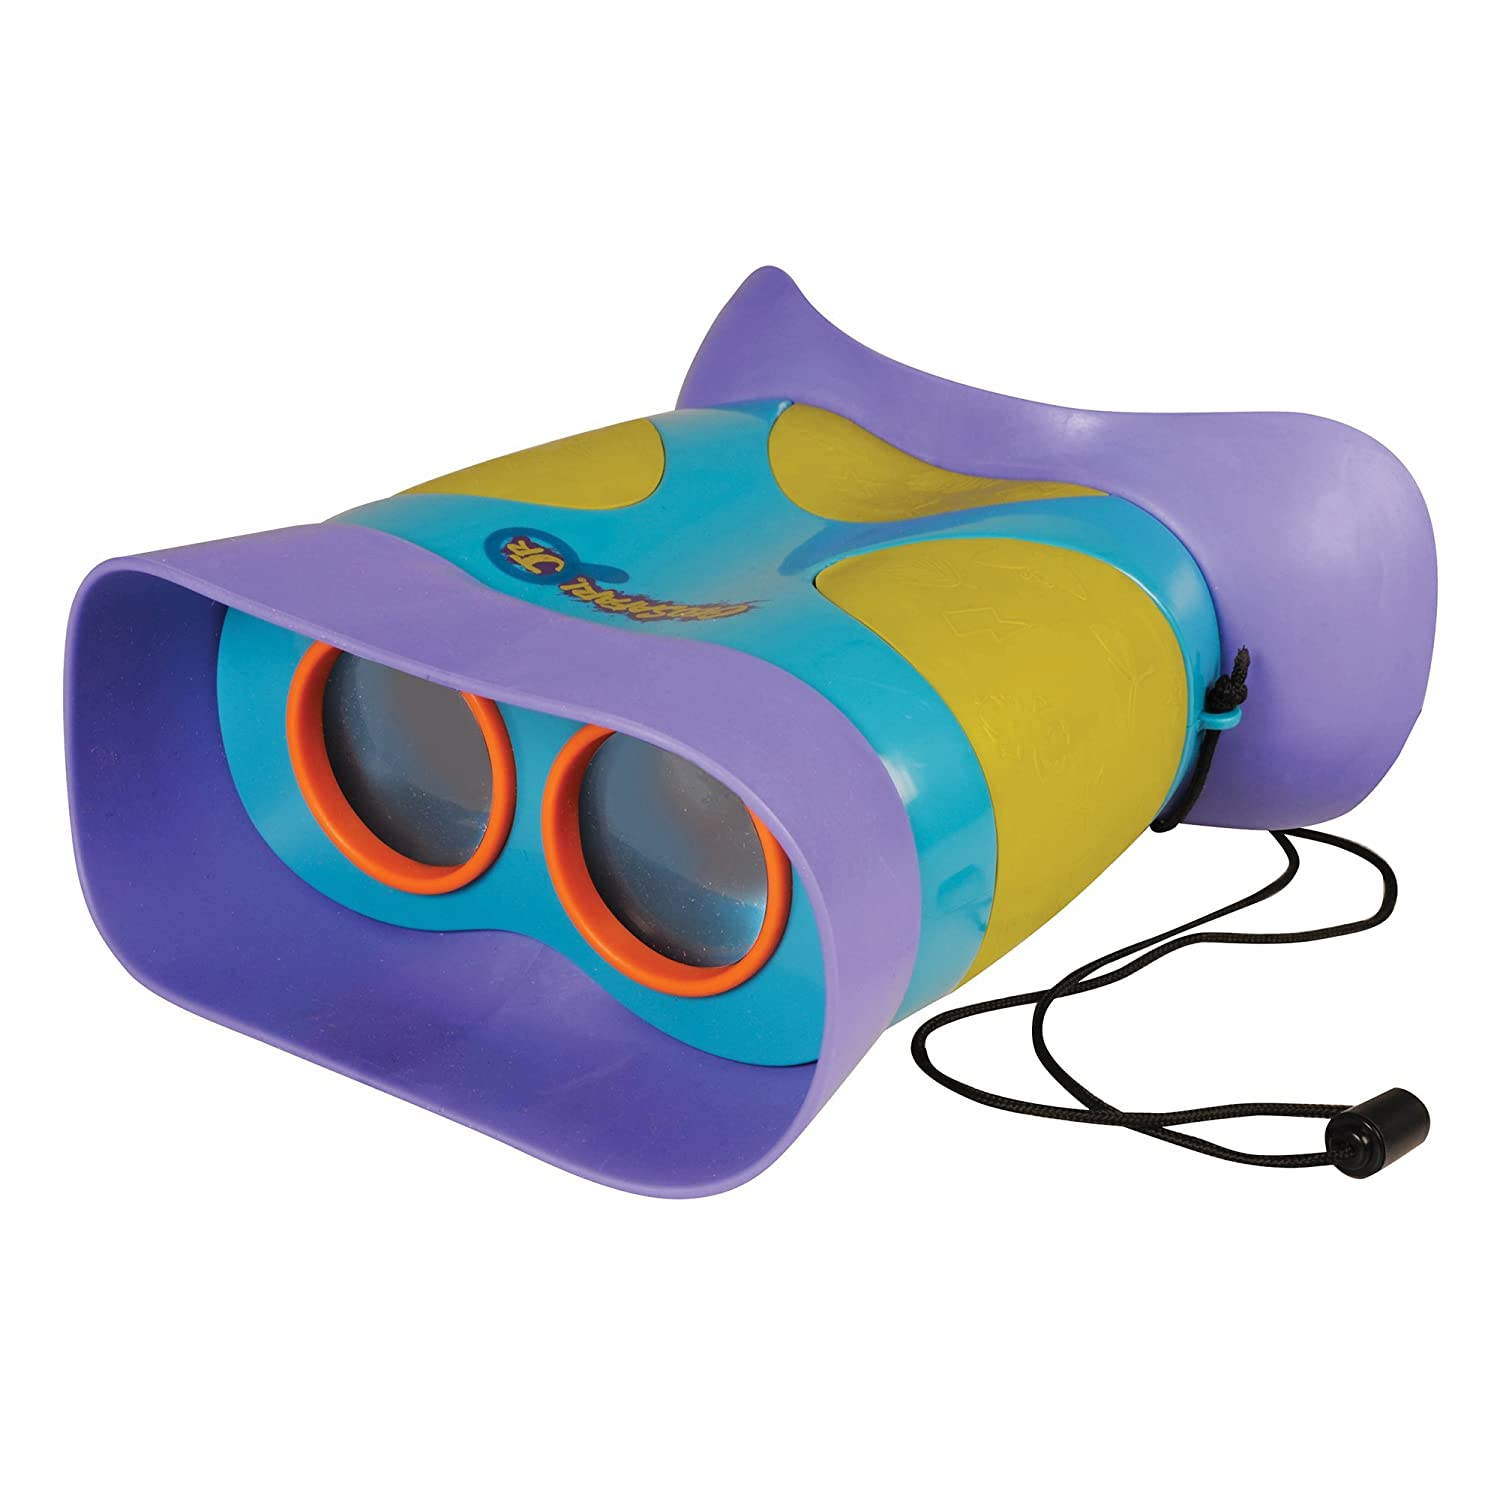 Educational Insights GeoSafari Jr. Kidnoculars: Kids Binoculars - Perfect for Preschool Science